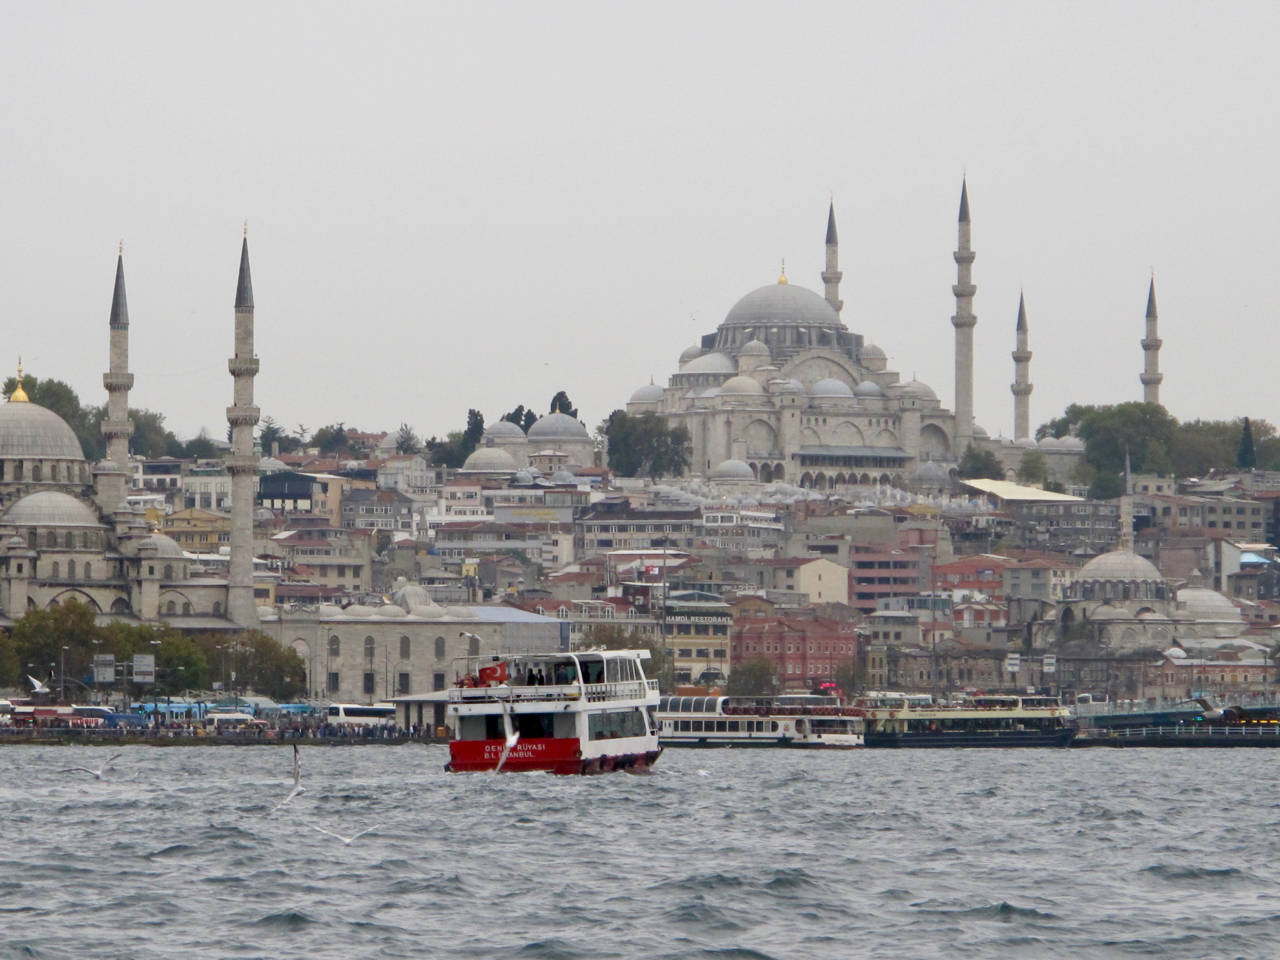 When in Istanbul, don't miss cruising on the Bosphorus.